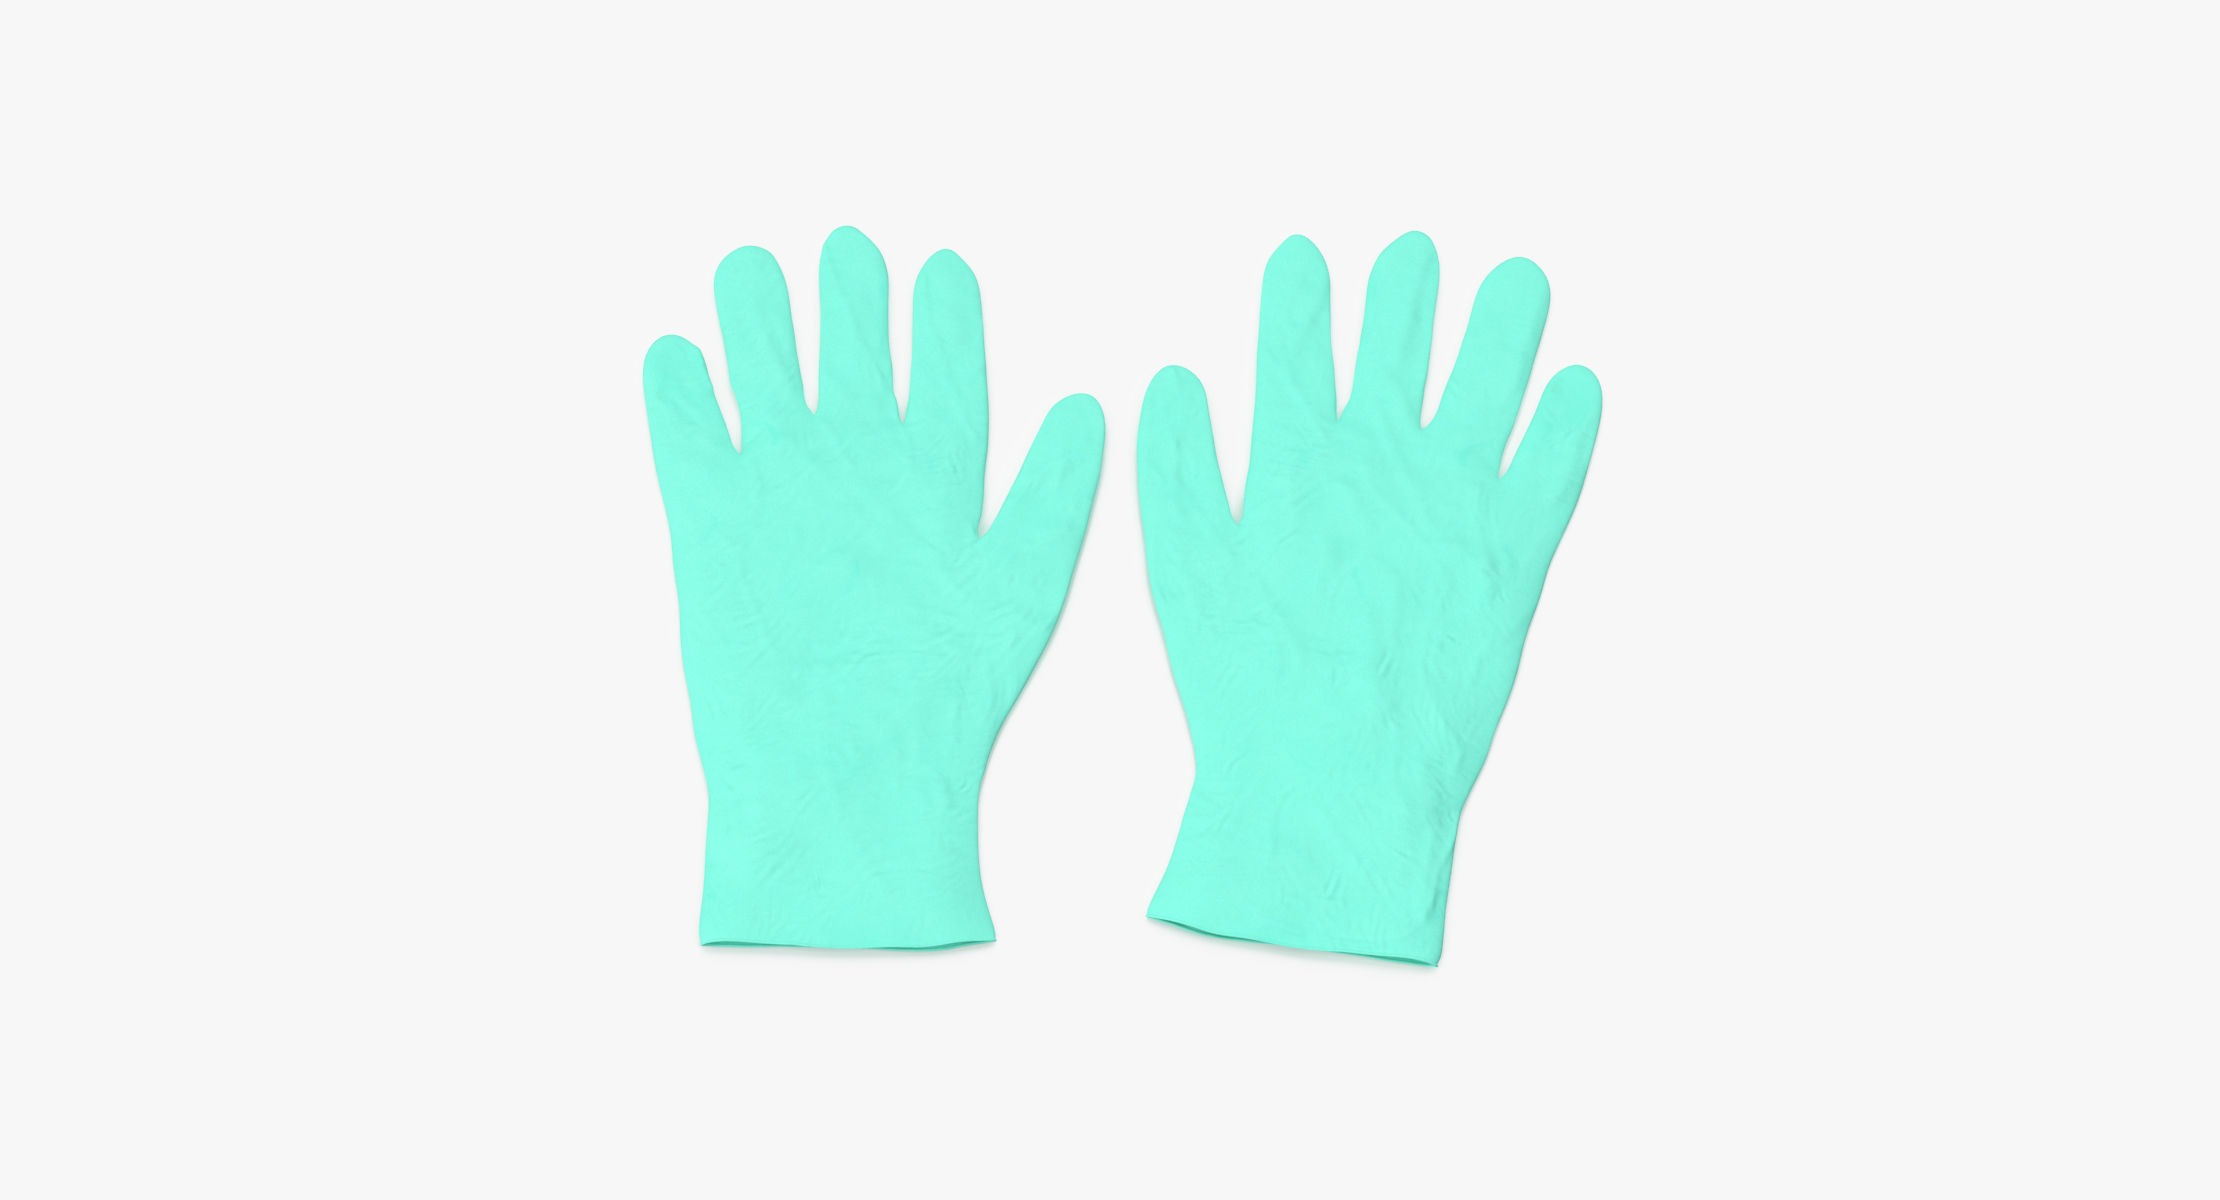 Surgical Gloves 01 - reel 1